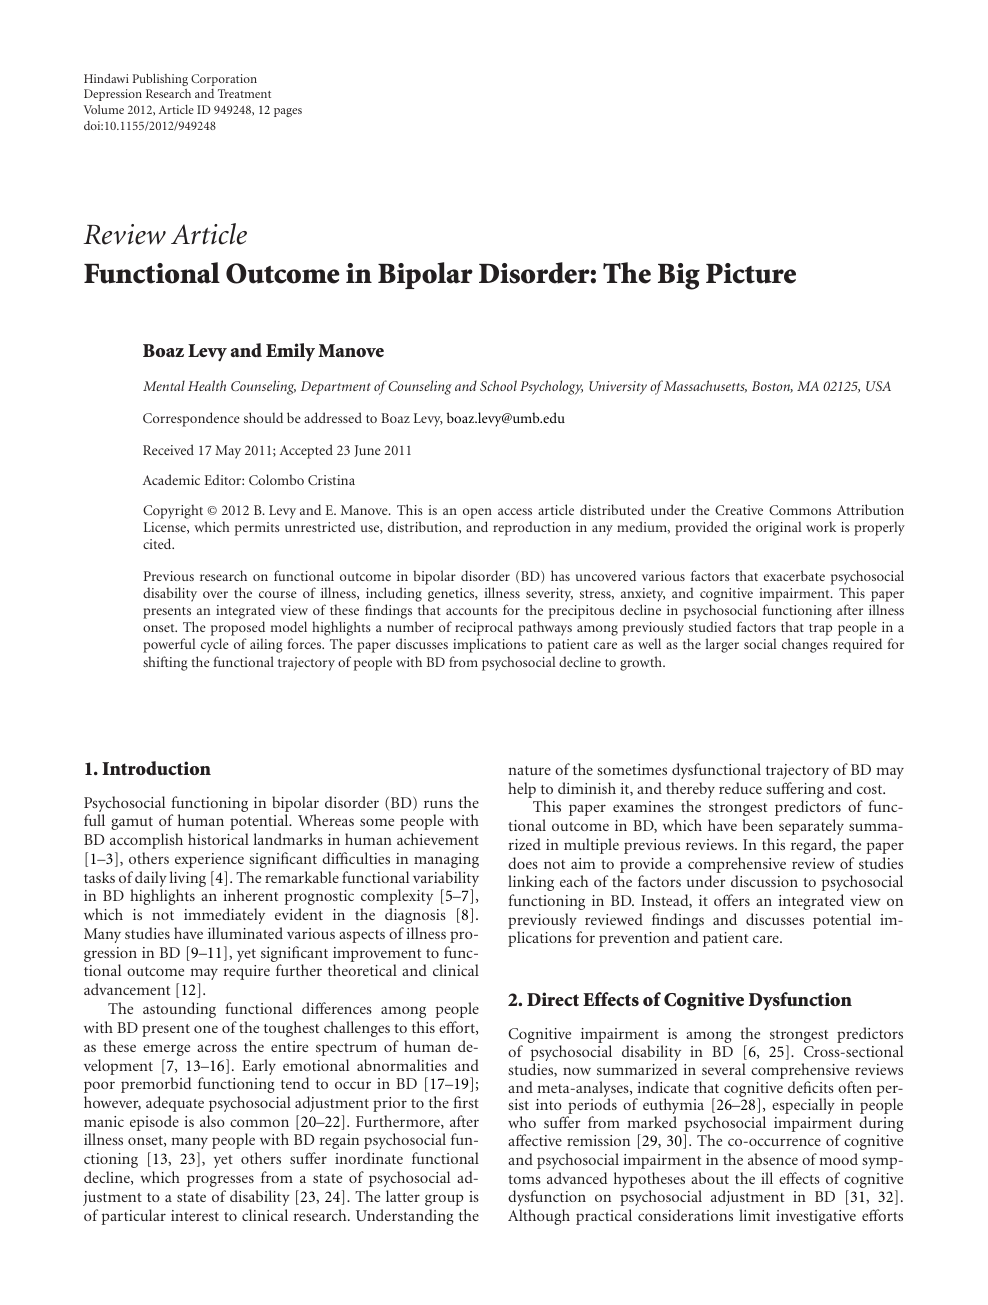 009 Bipolar Disorder Research Paper Introduction Rare Full